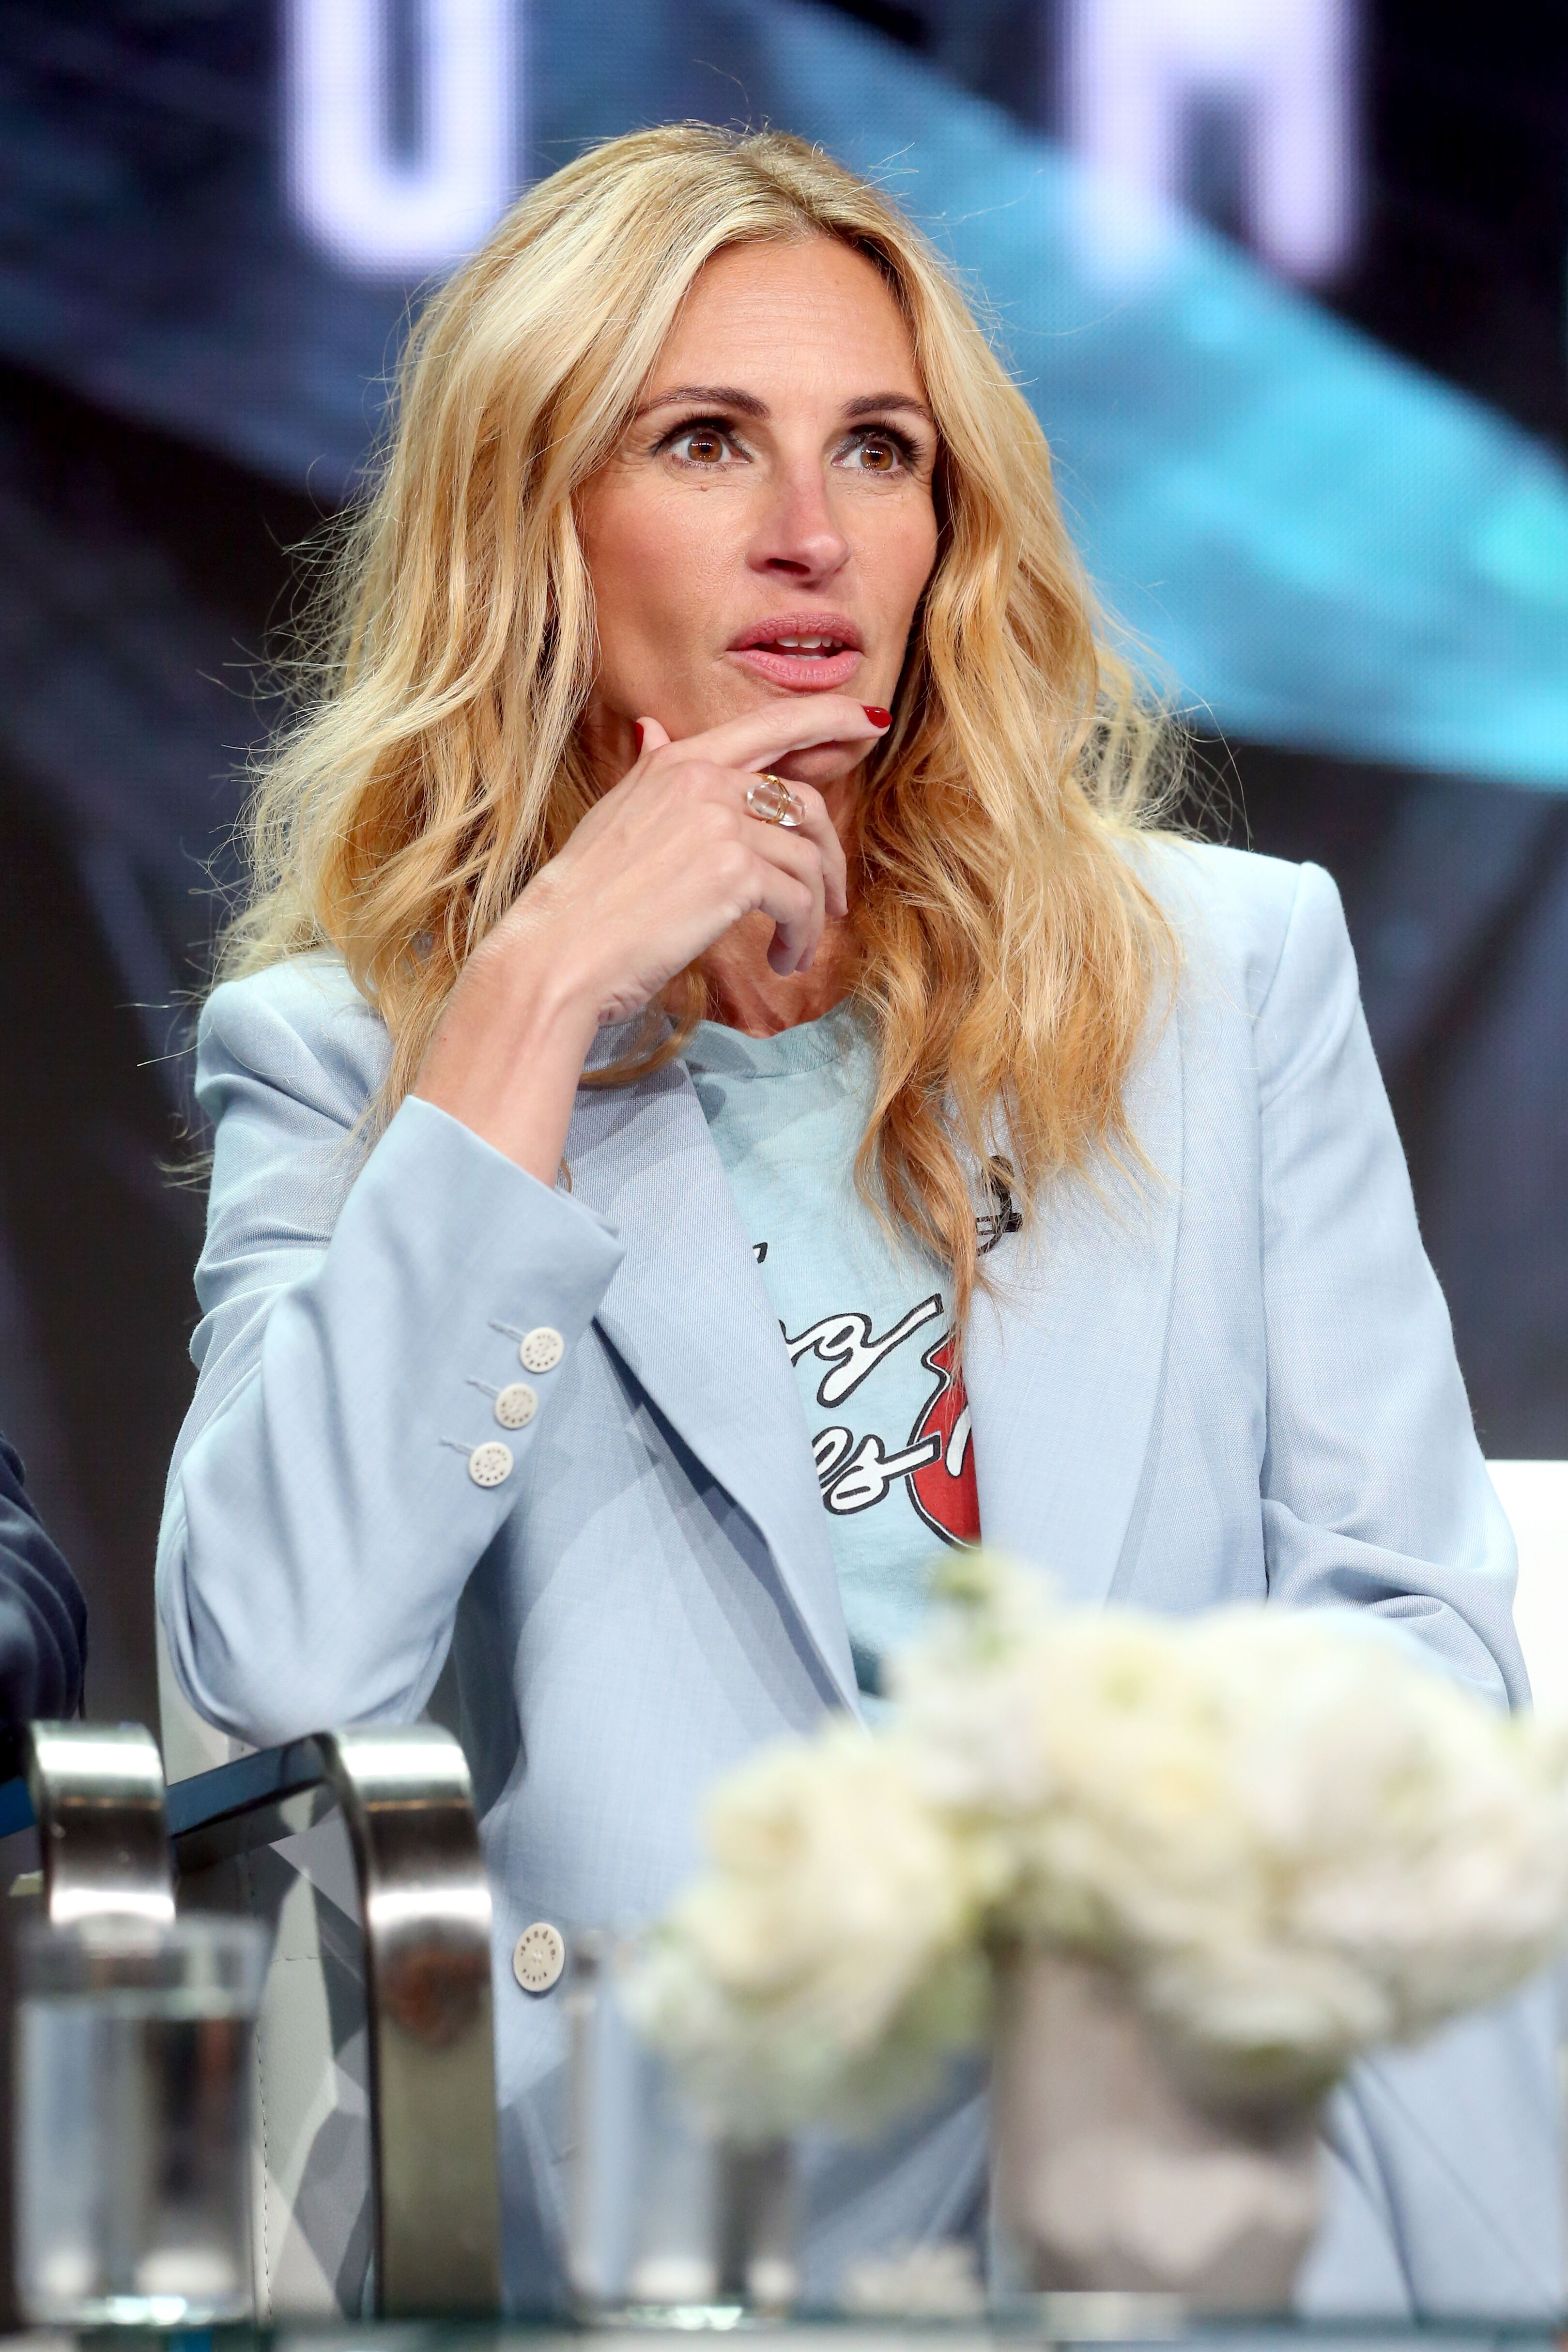 ulia Roberts of 'Homecoming' speaks onstage during the Amazon Studios portion of the Summer 2018 TCA Press Tour.   Source: Getty Images